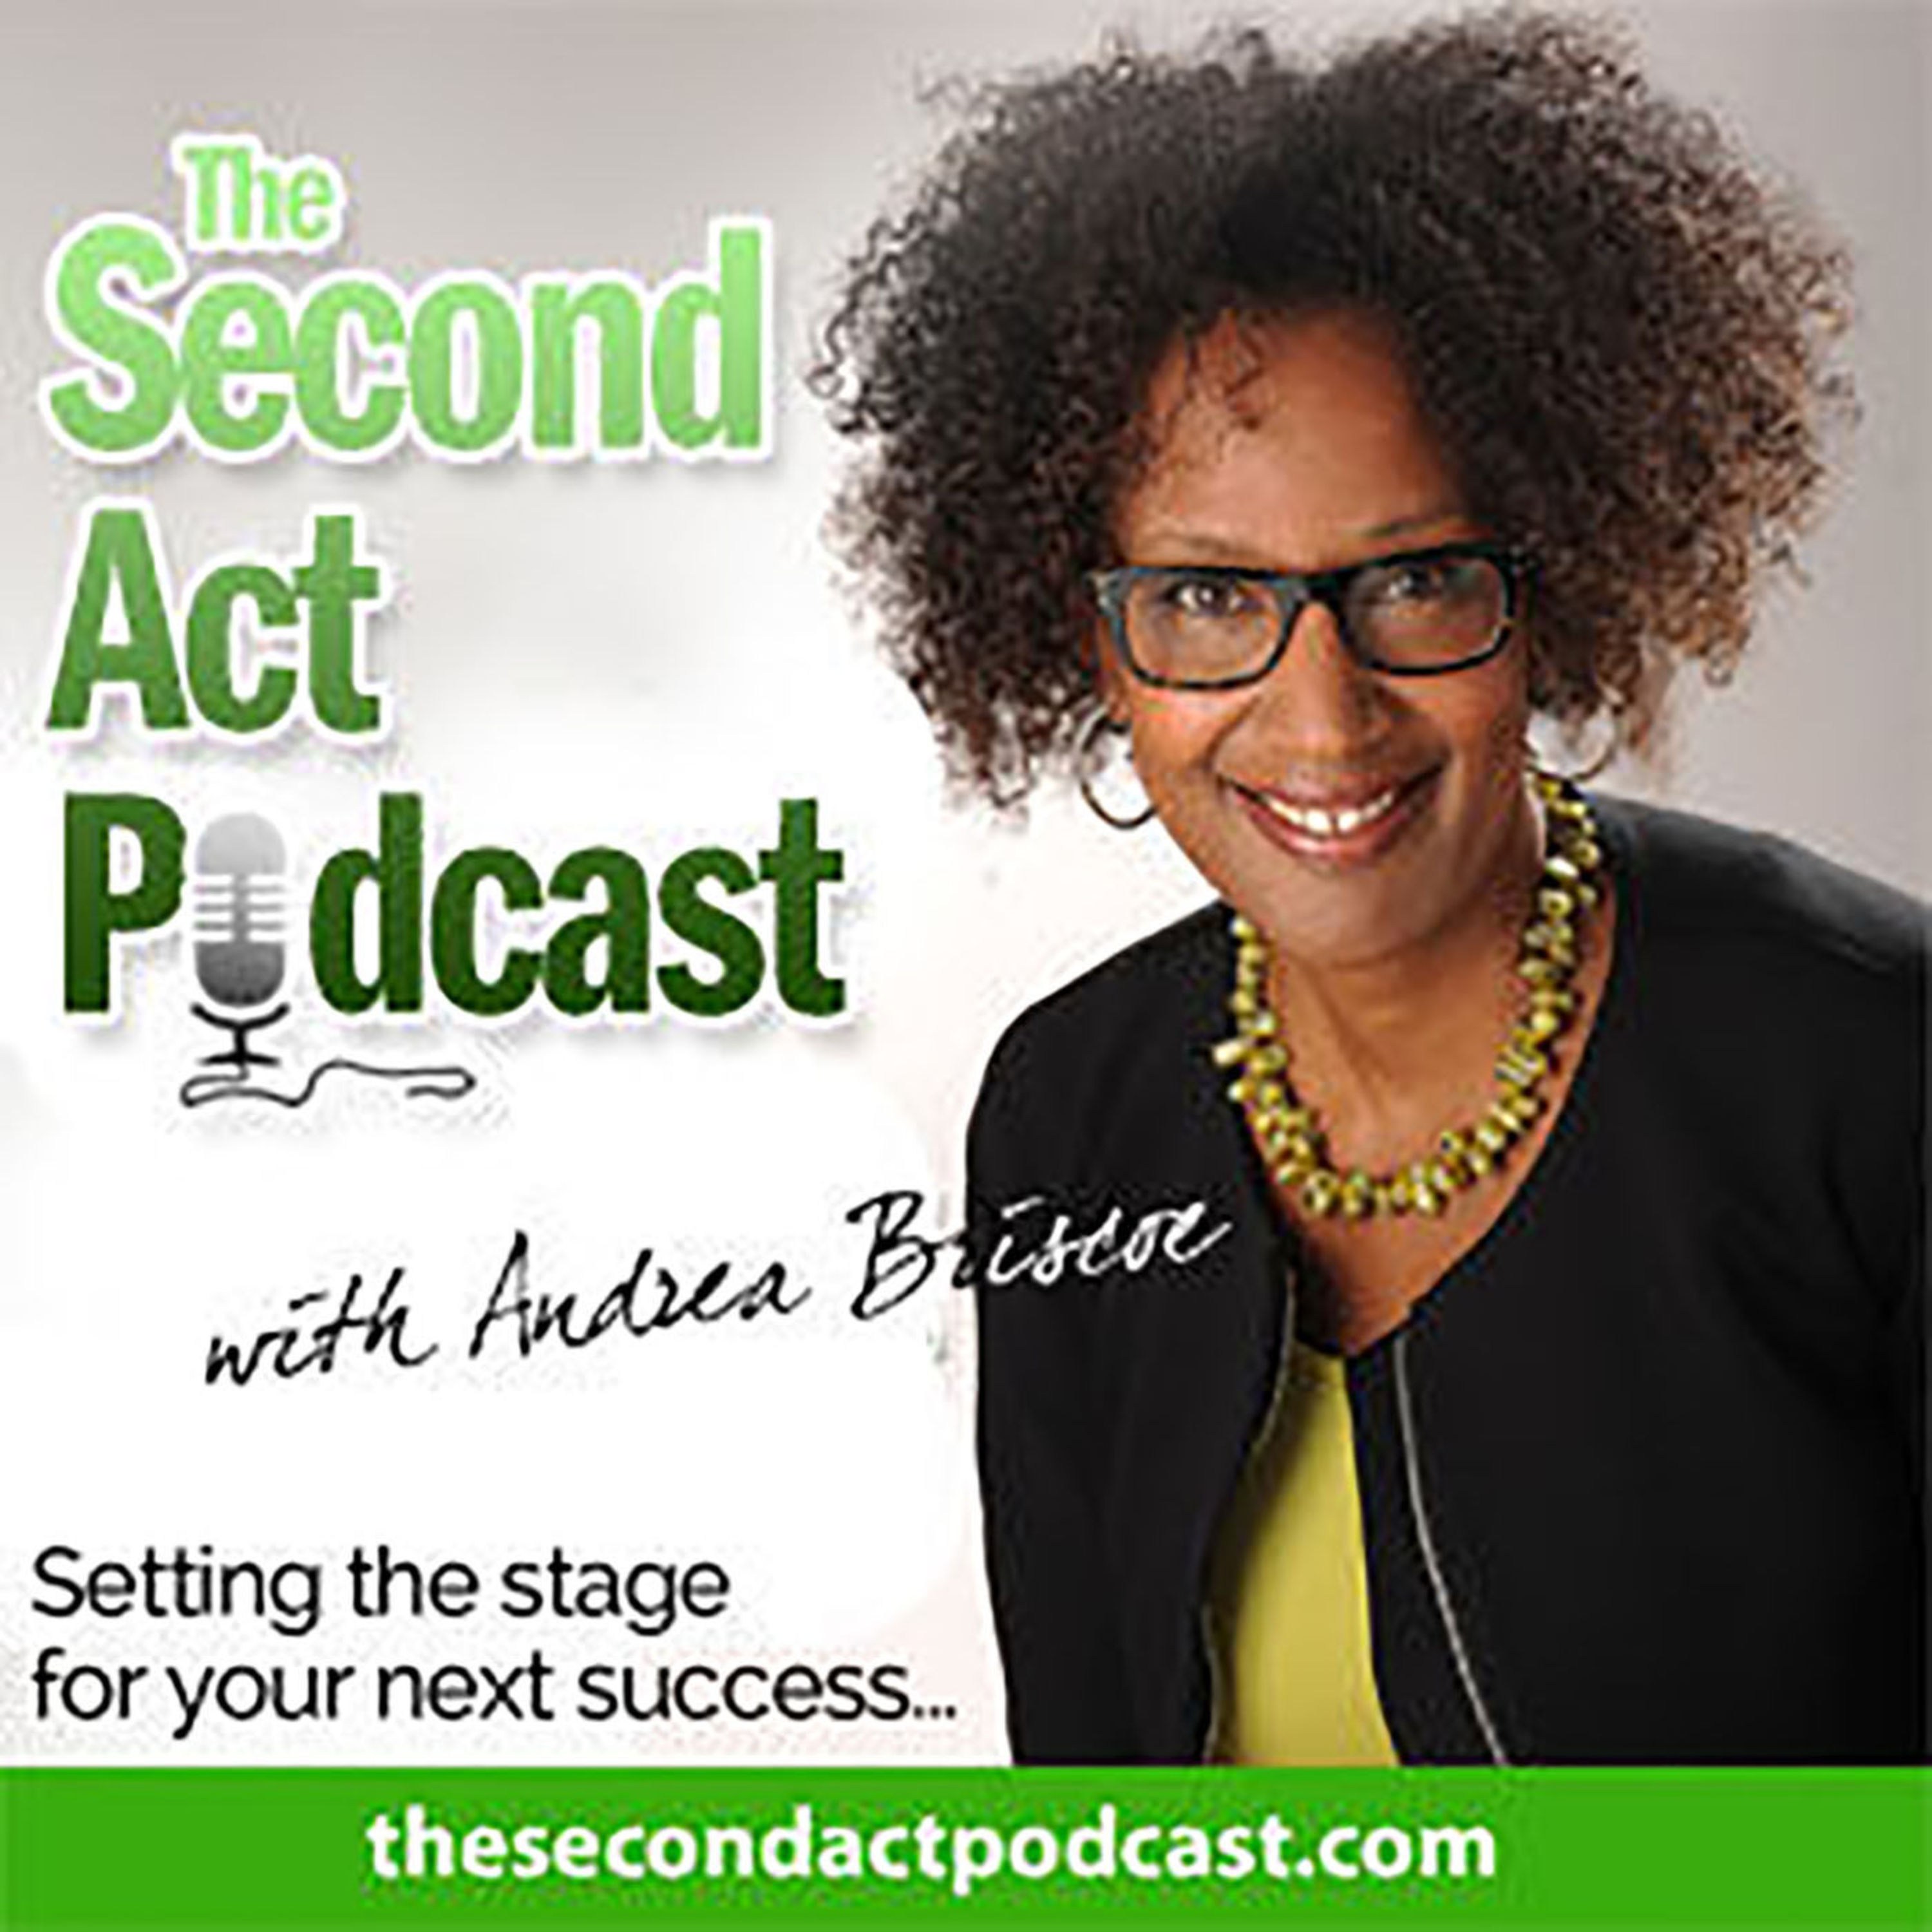 <![CDATA[The Second Act Podcast]]>